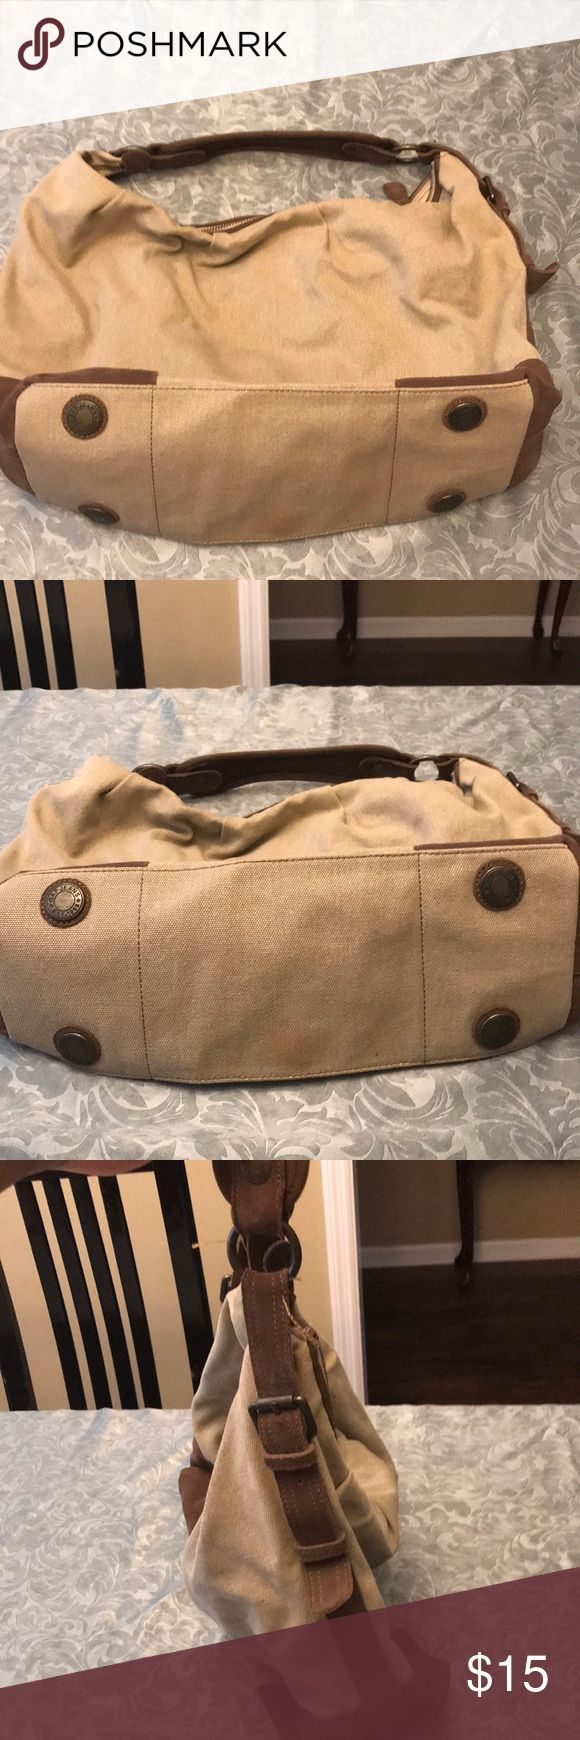 EUC Gap Handbag, suede trim EUC Gap Handbag, Worn a few times, large with suede trim. There is a spot on the bottom and a few pen marks on the inside. Please see photos. Price reflects these flaws. GAP Bags Shoulder Bags